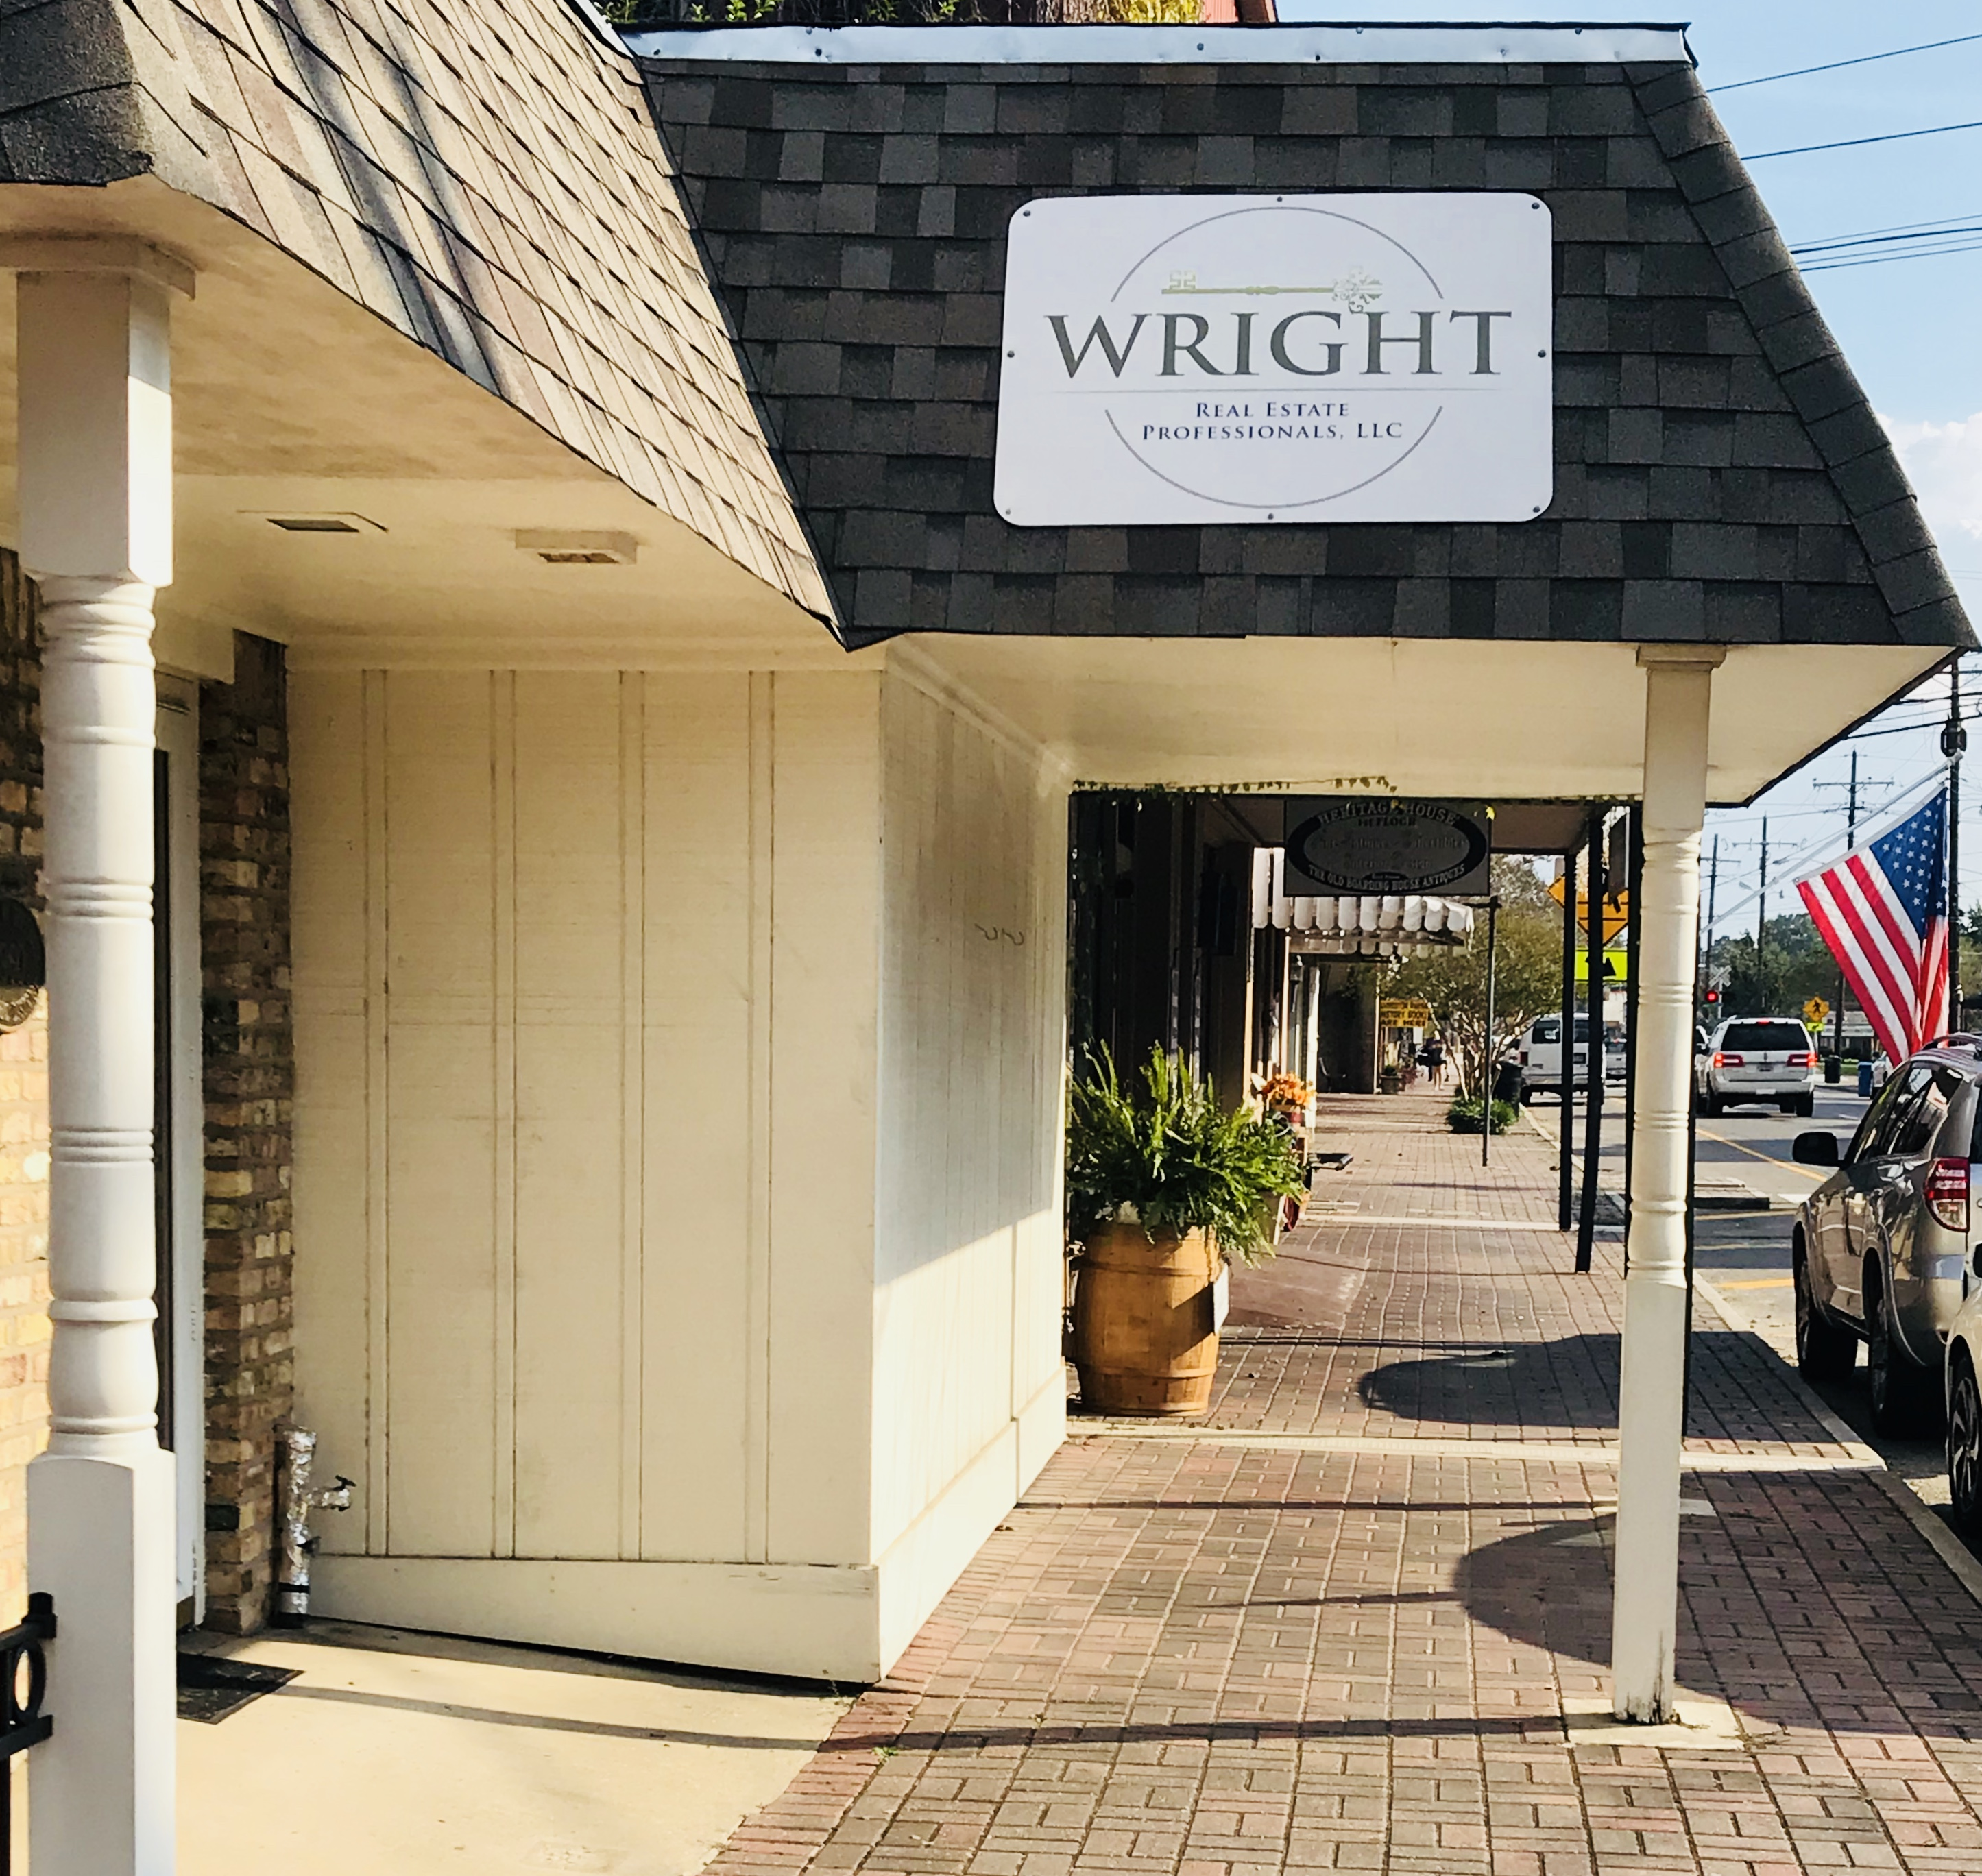 Wright Real Estate Professionals LLC